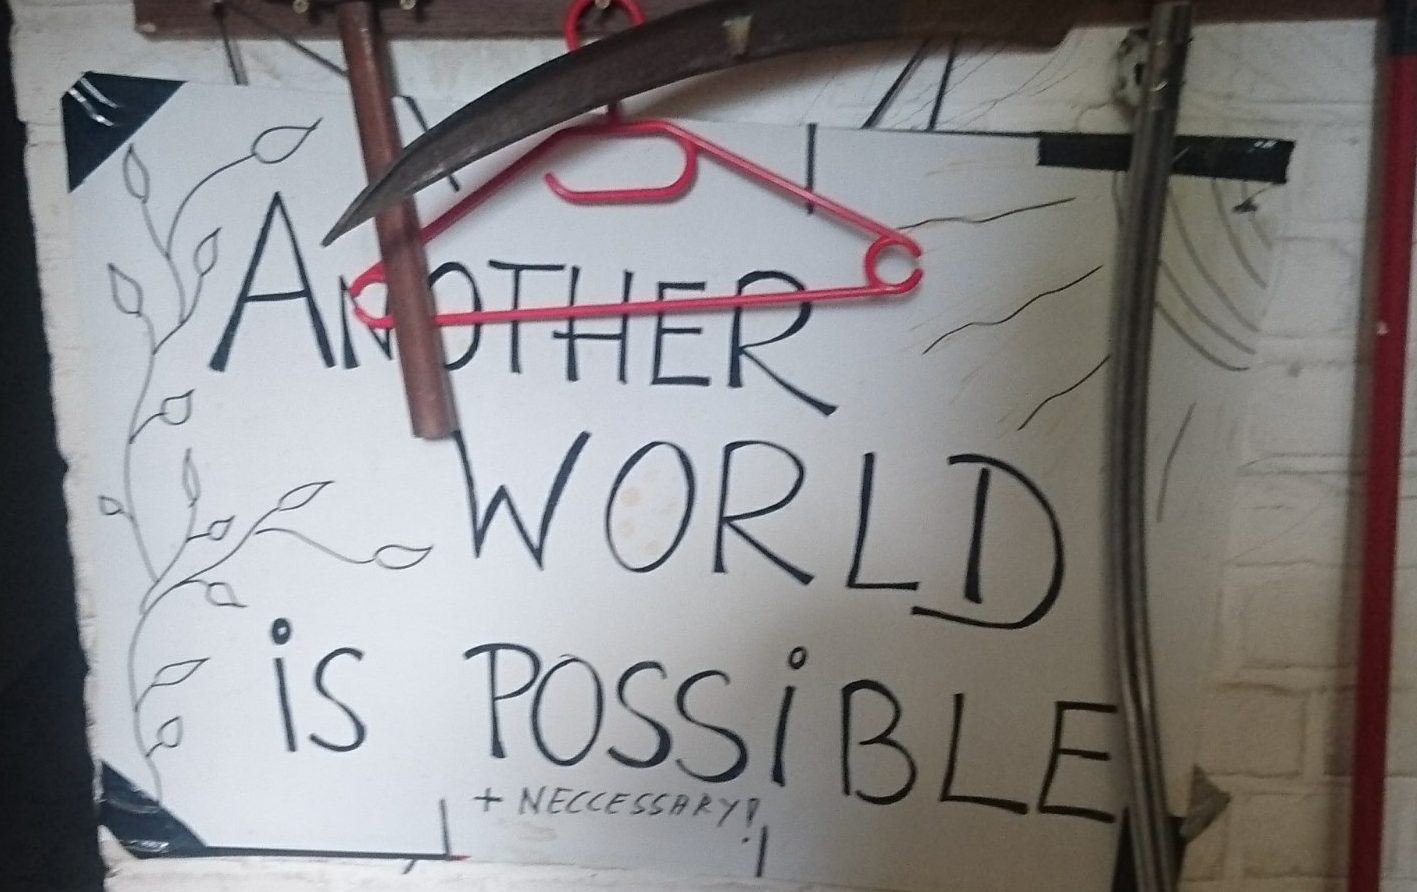 Another WORLD is POSSiBLE `NECCESSARY!